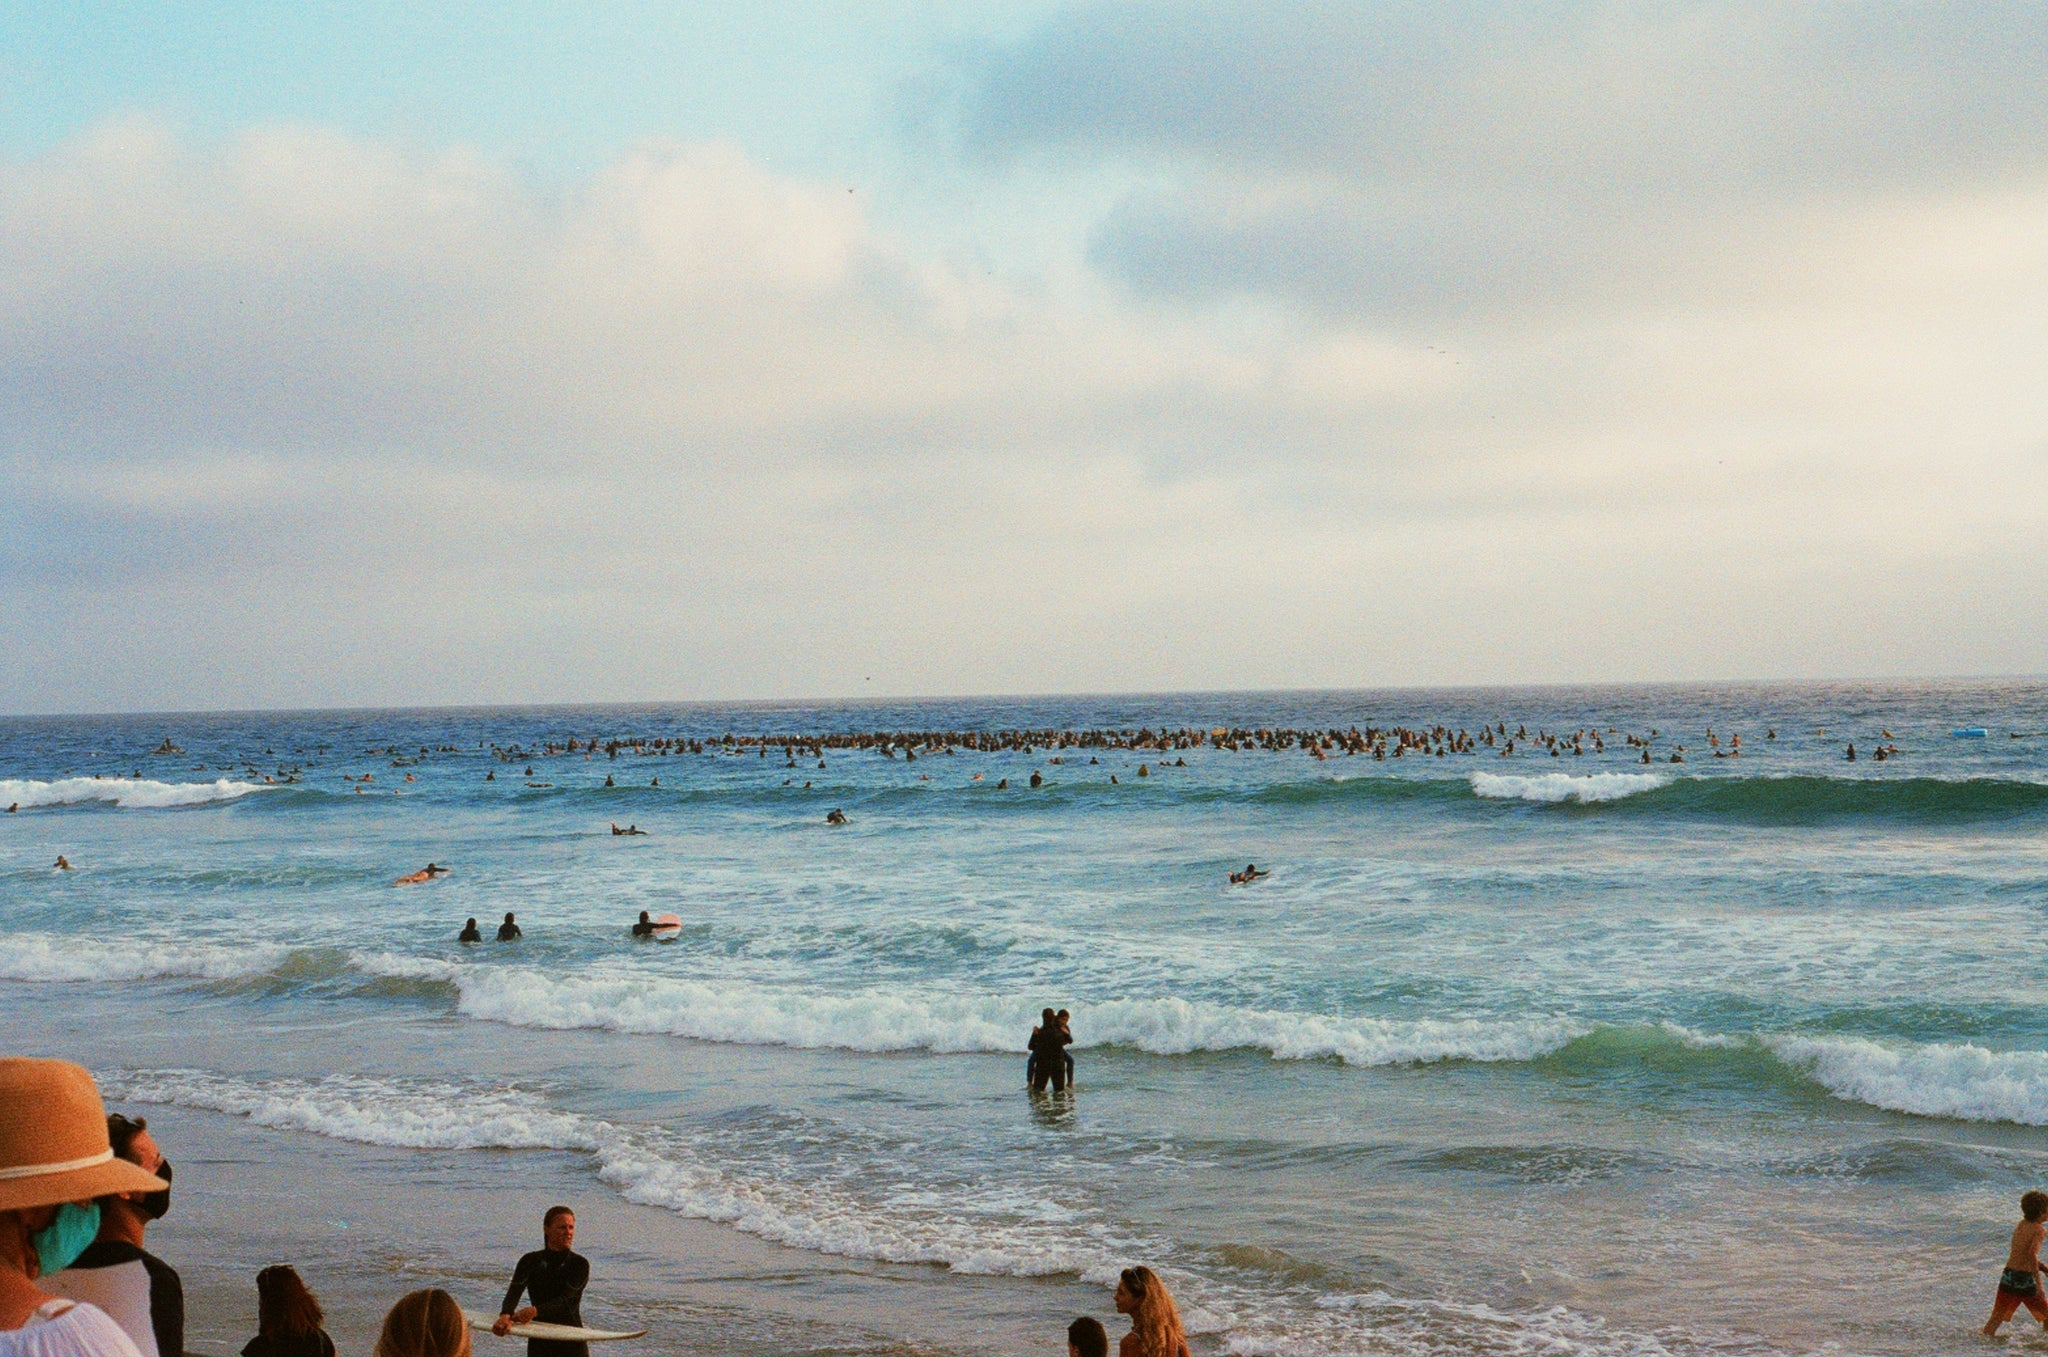 paddle for peace and paddle for unity paddle out in San Diego, California shot on 35mm film